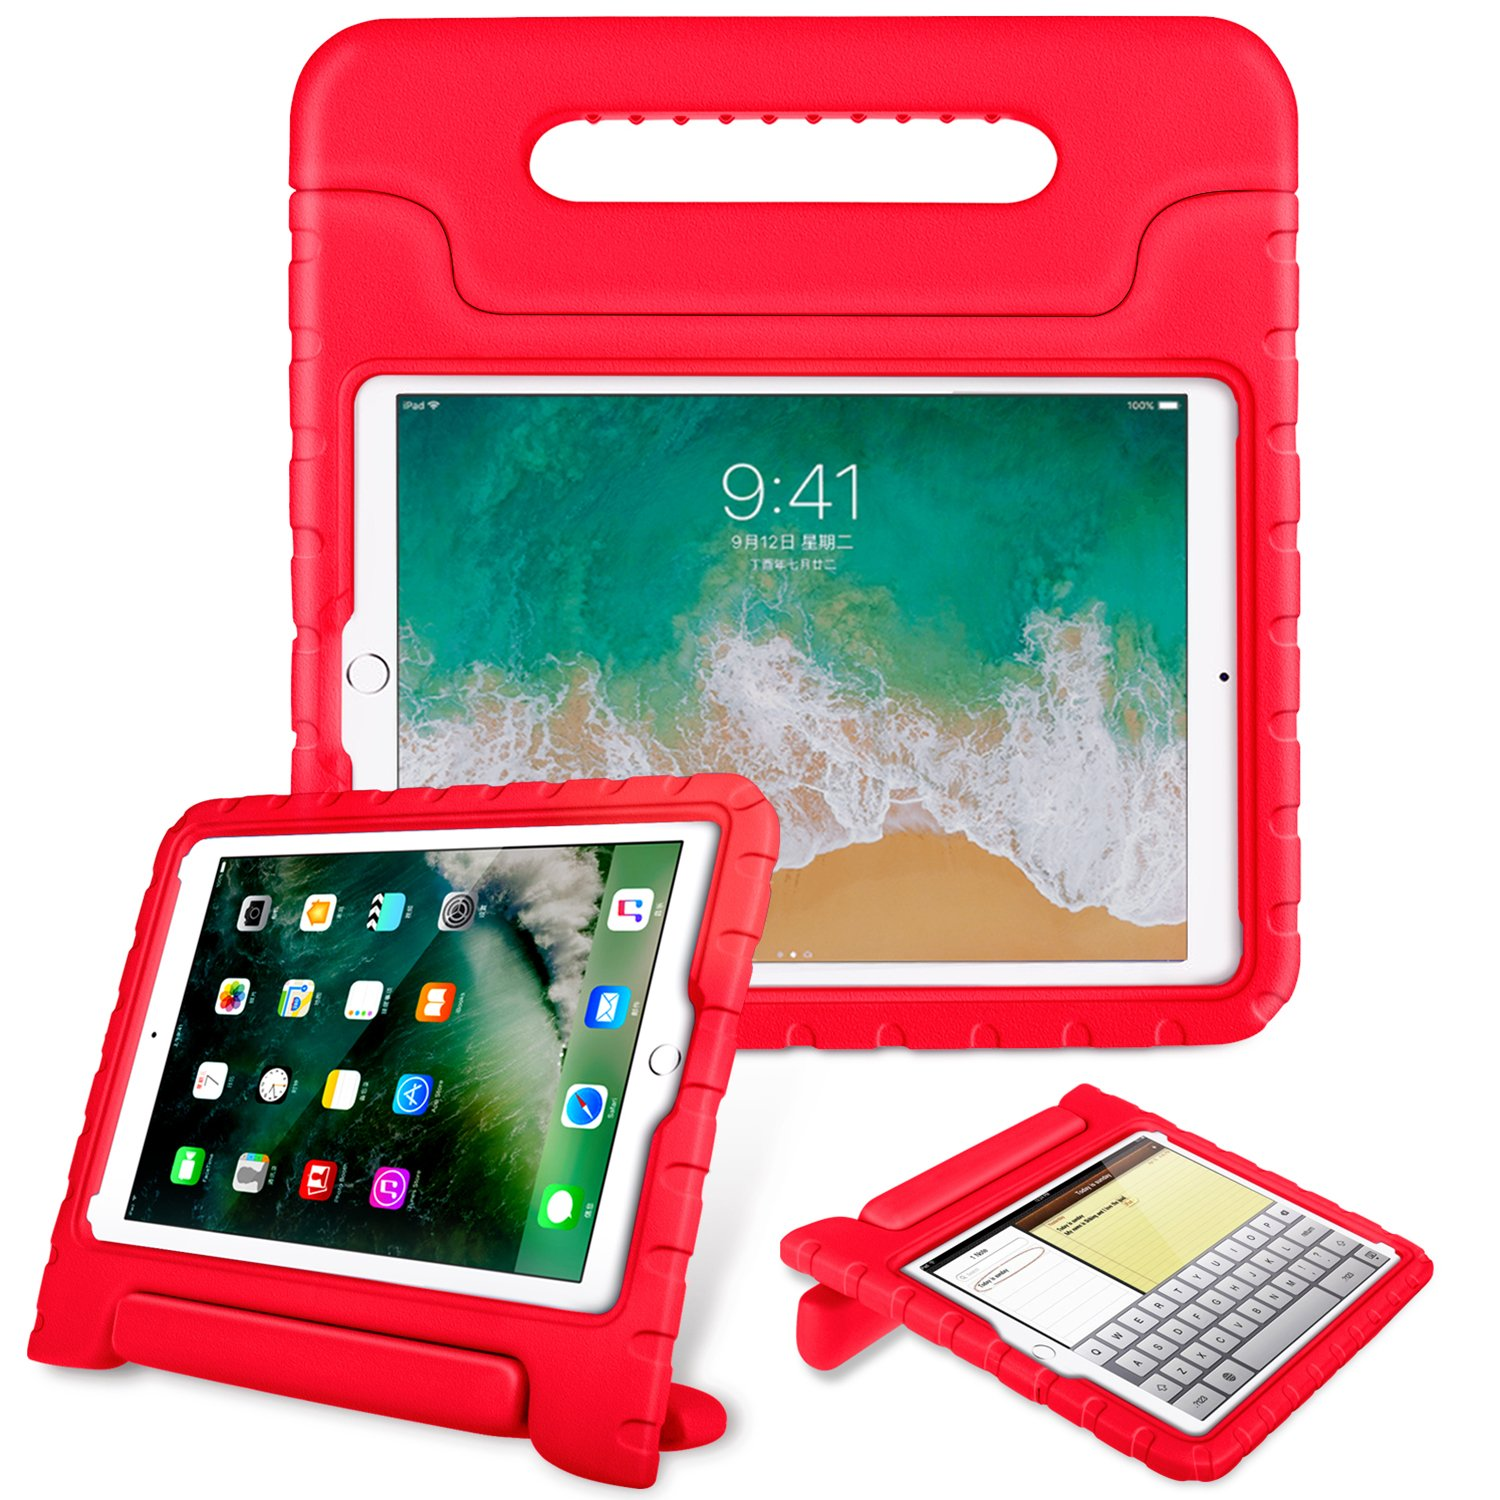 Fintie Case for iPad 6th Generation 2018 / iPad 5th Generation 2017 / iPad Air 2 / iPad Air (9.7 Inch) - Kiddie Series Light Weight Shock Proof Convertible Handle Stand Cover Kids Friendly, Red